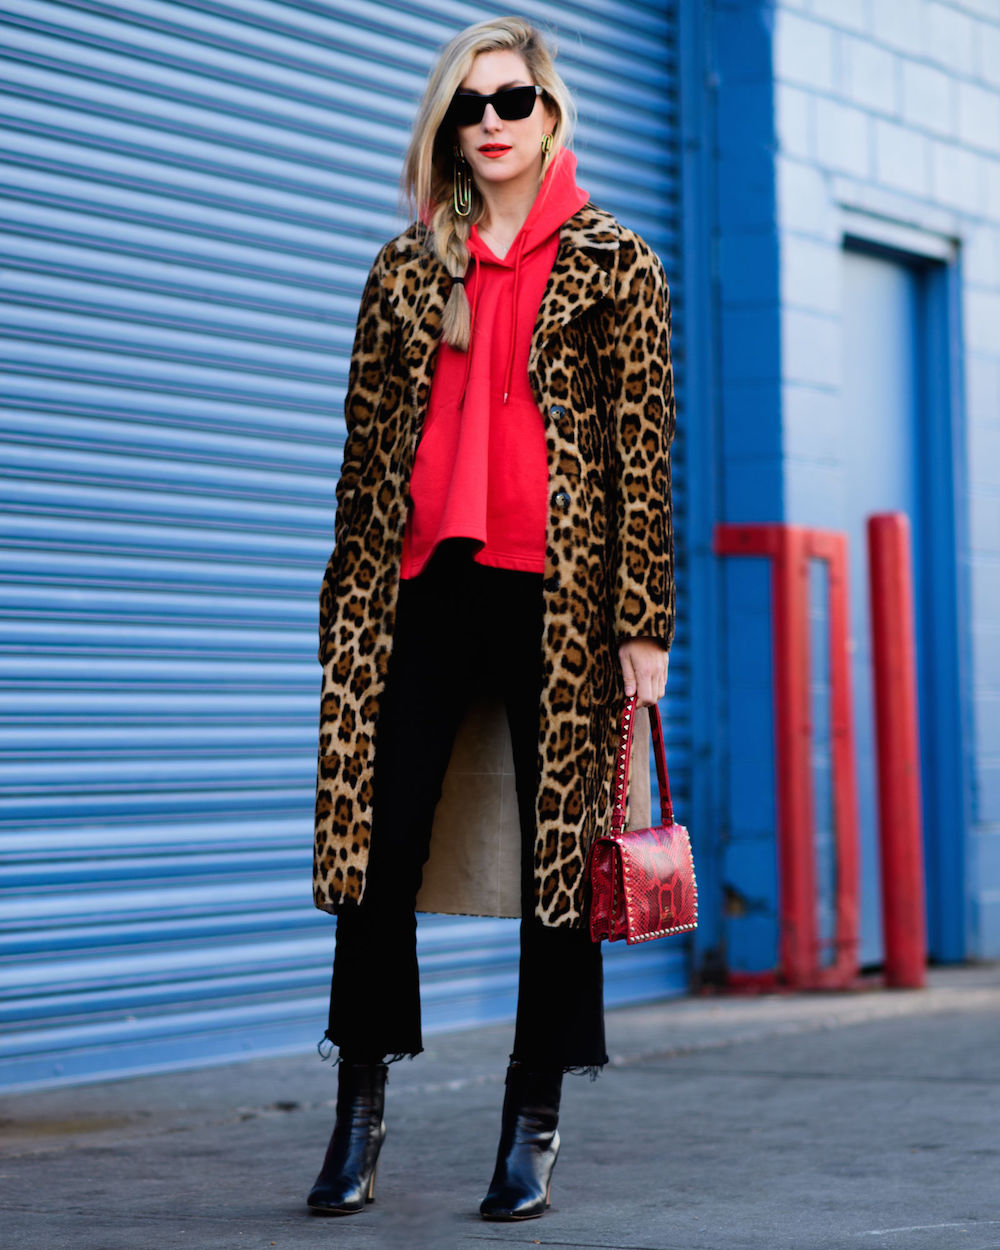 joanna hillman wearing a red hoodie and leopard coat // wearable street style nyfw fall 2017 | the stripe blog